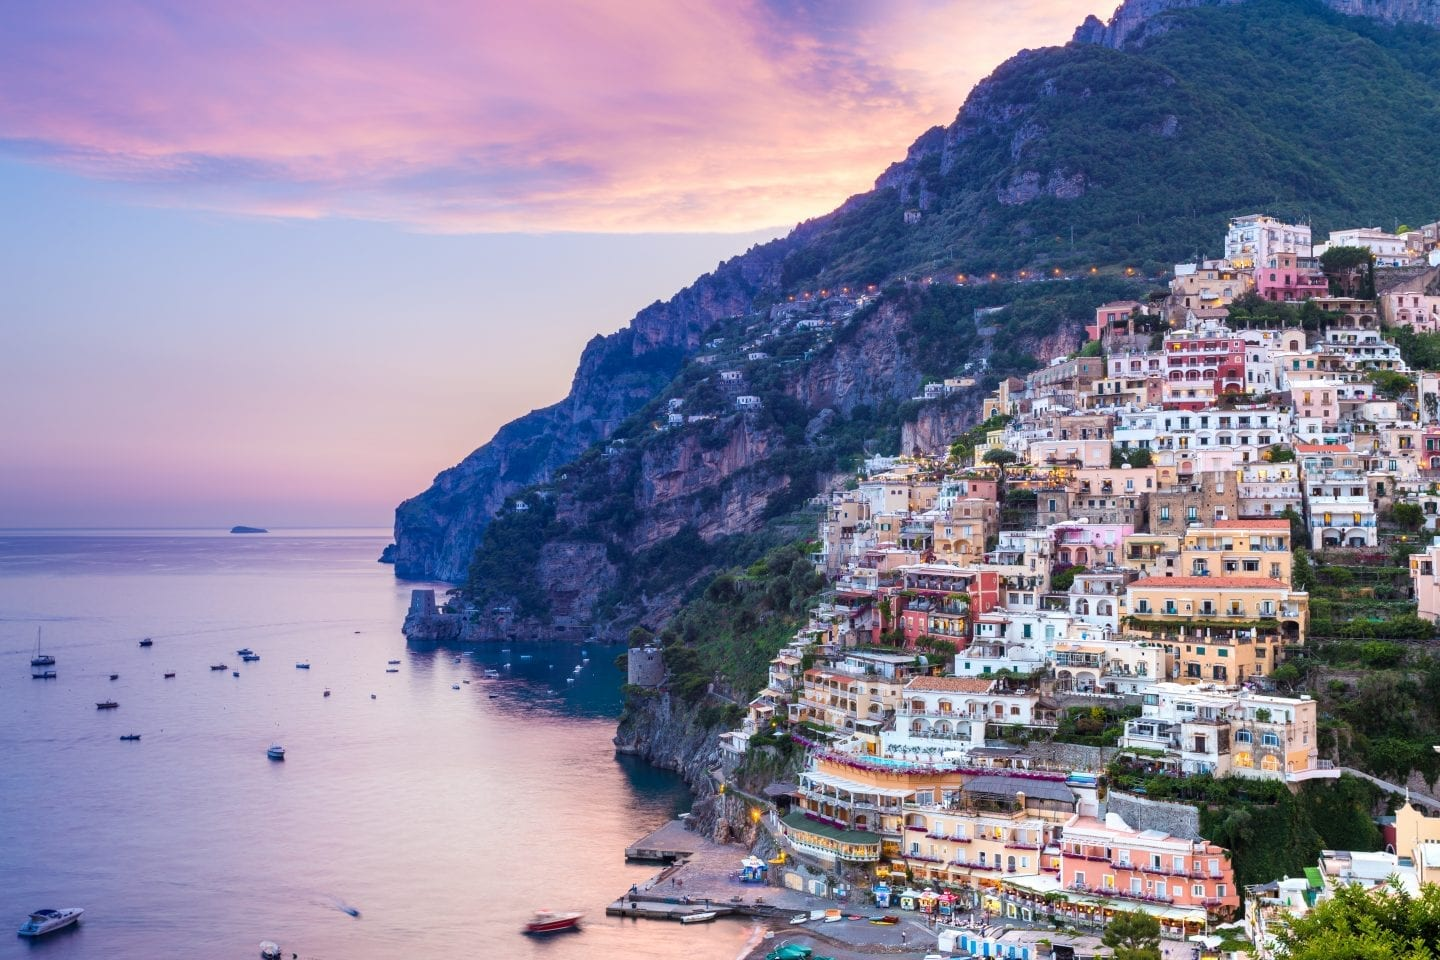 sunset is one of the best things to do in positano